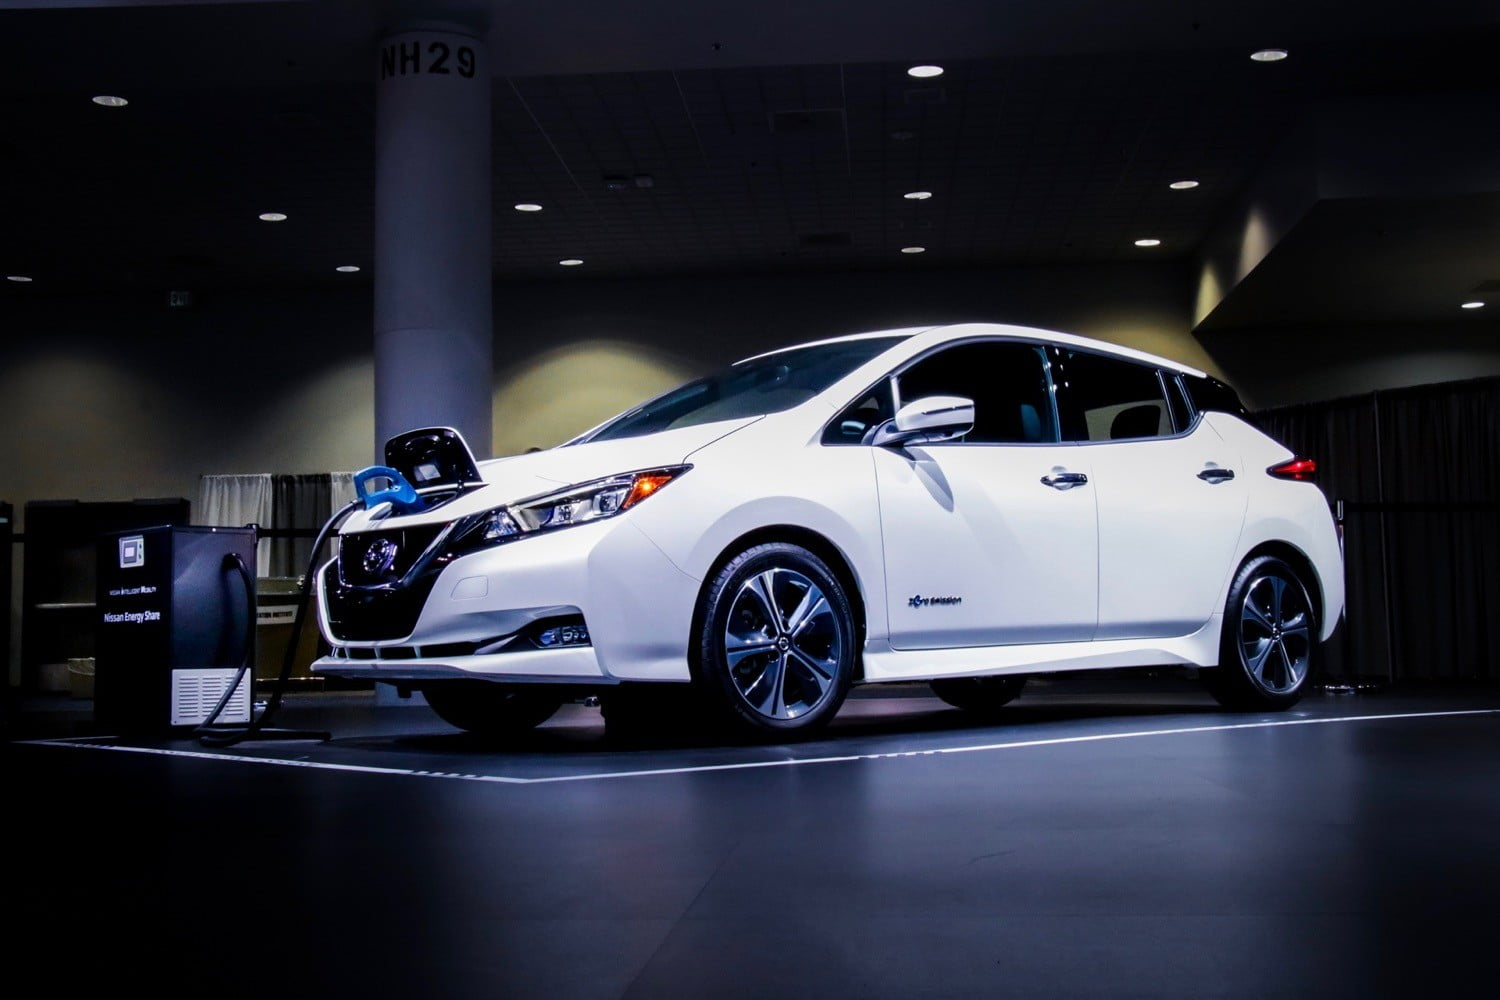 Nissan Leaf Battery Life >> Nissan Leaf Batteries Can Outlast Cars By 10 Years